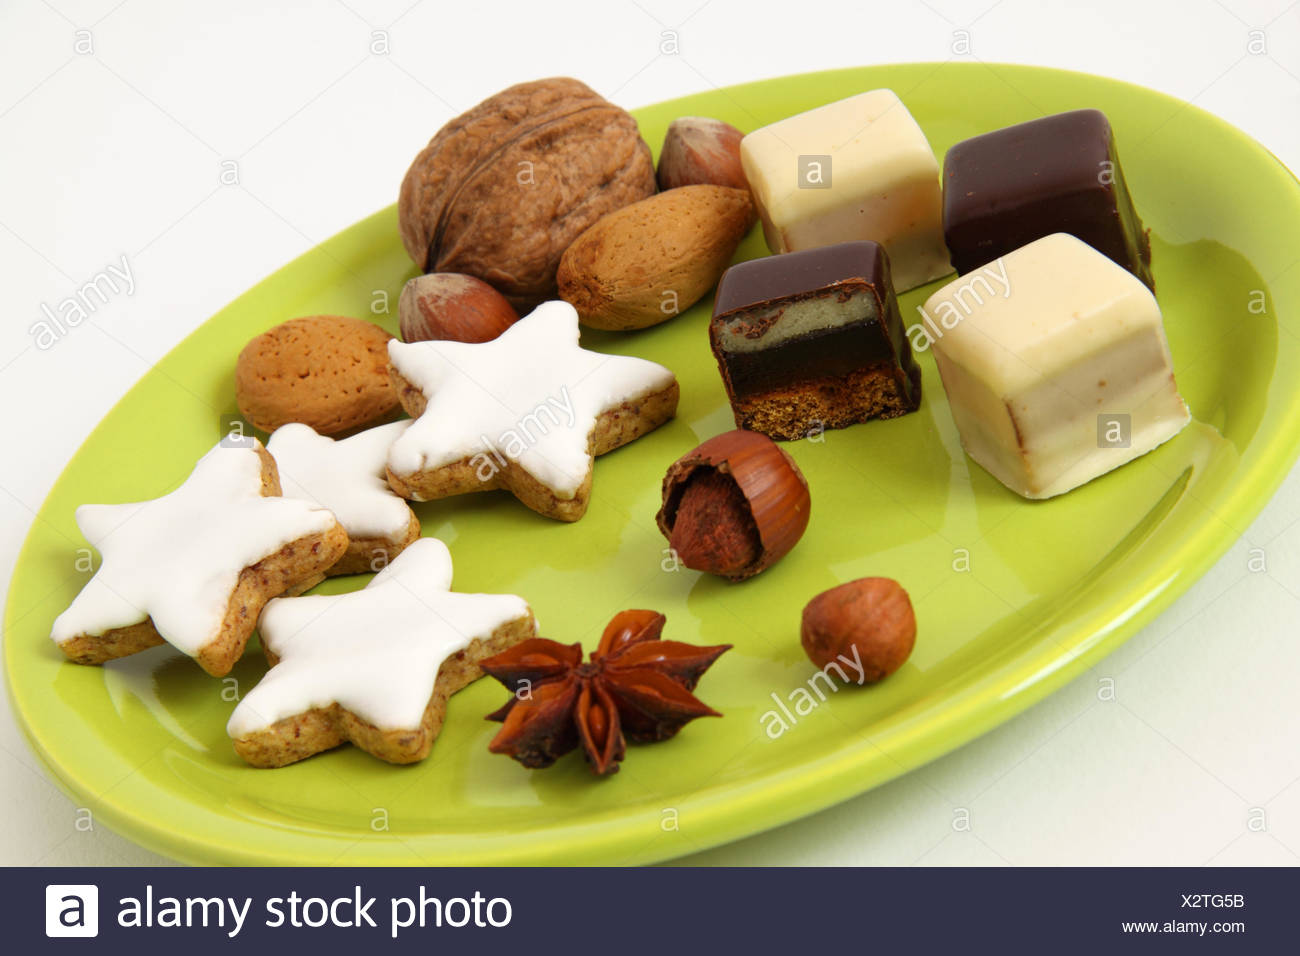 Nuts Filberts Christmas Bake Christmas Cookies Sweets Pastry Spices